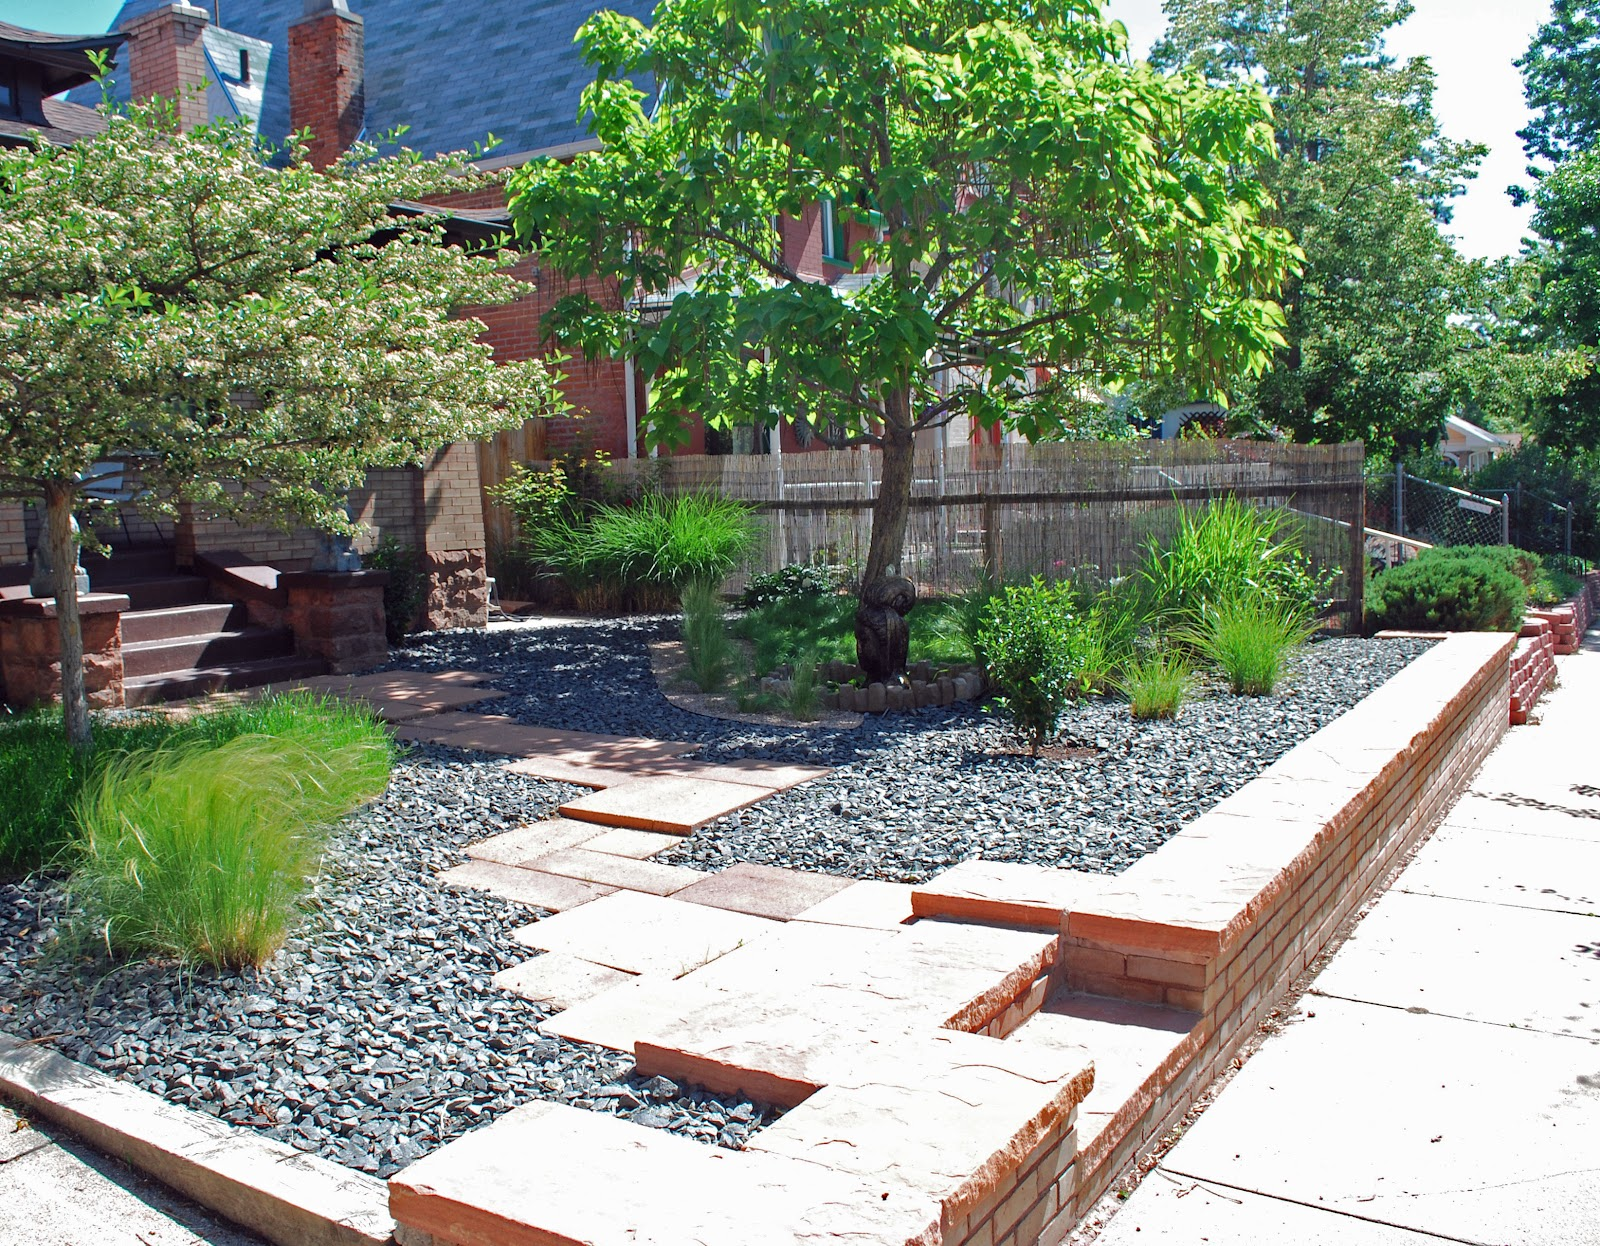 Landscape design focus low maintenance garden share bristol for Low maintenance garden design